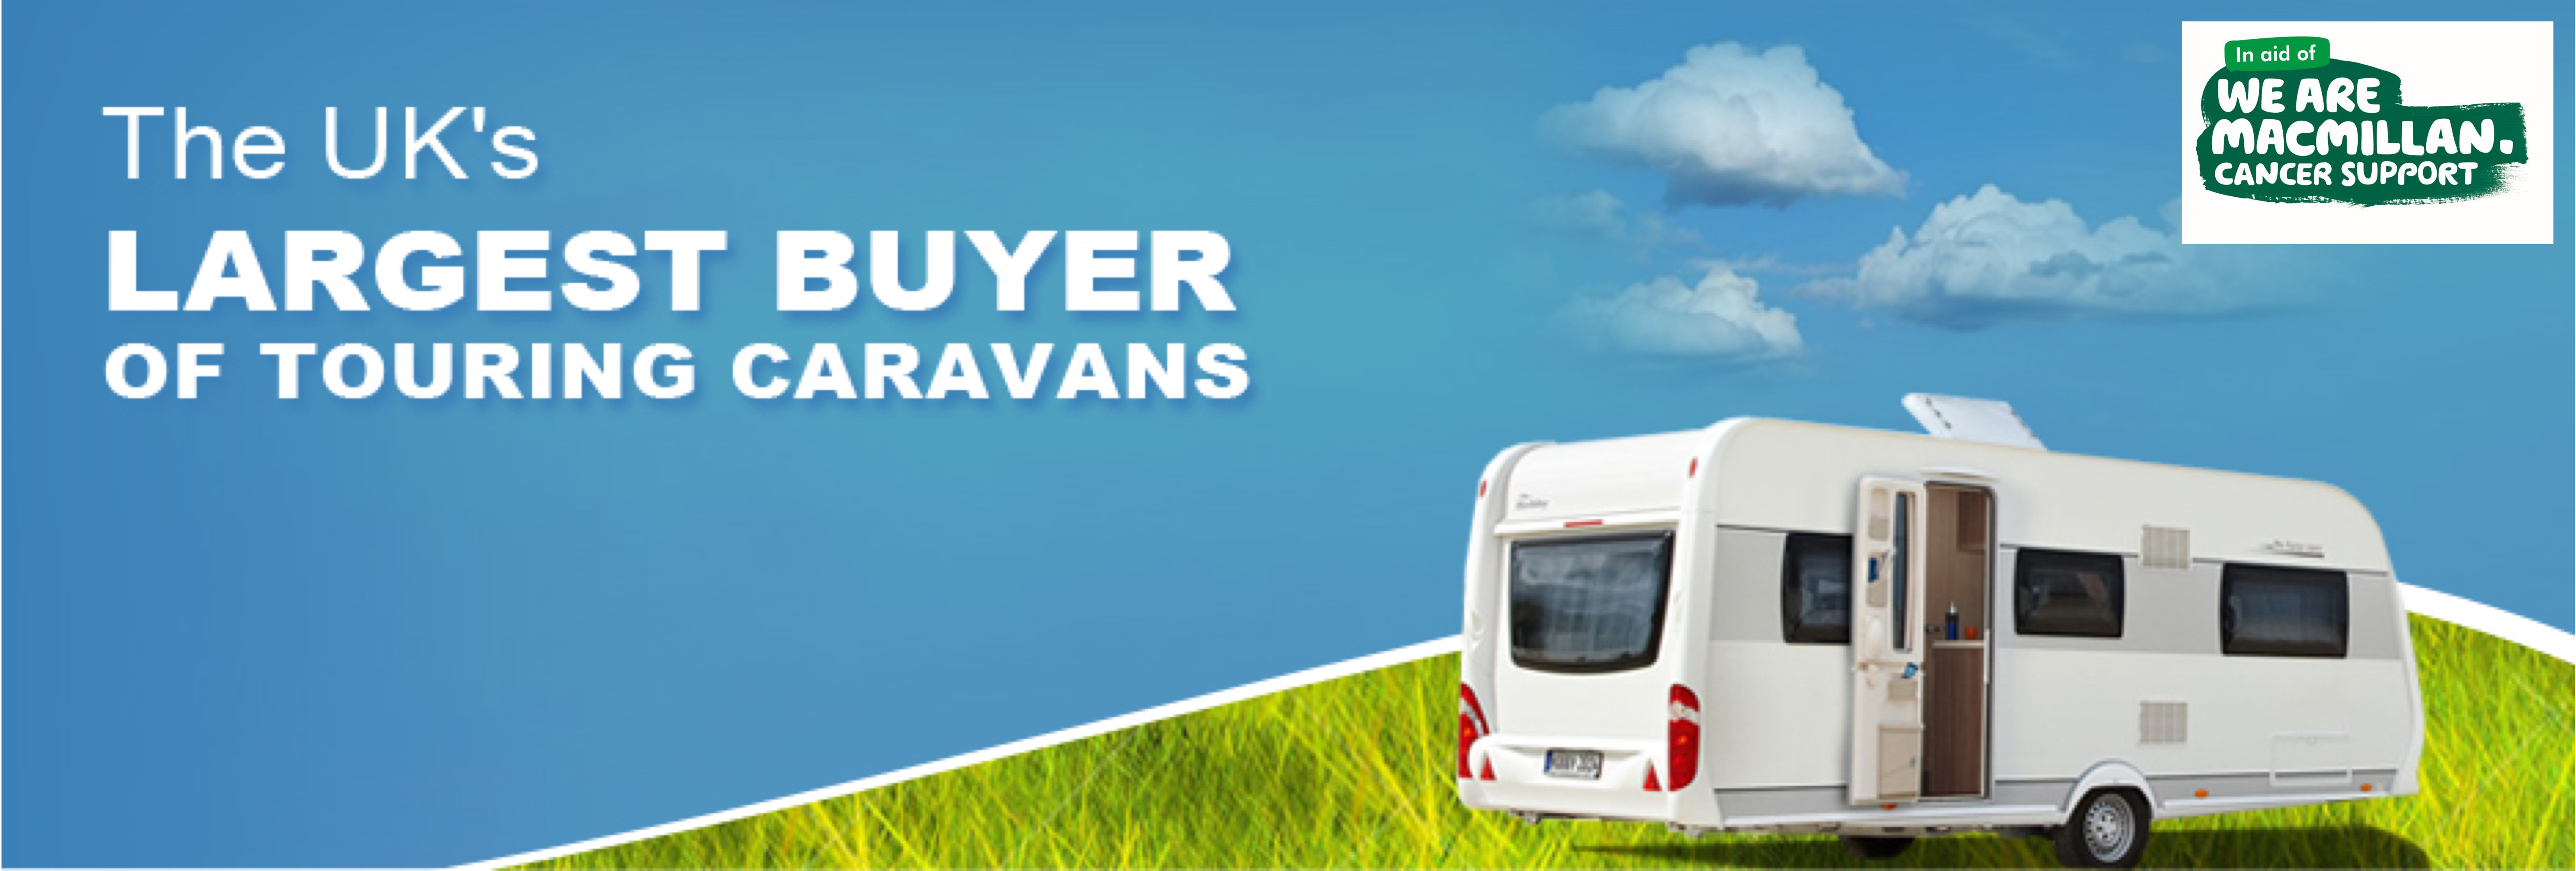 The UK's largest buyer of touring caravans